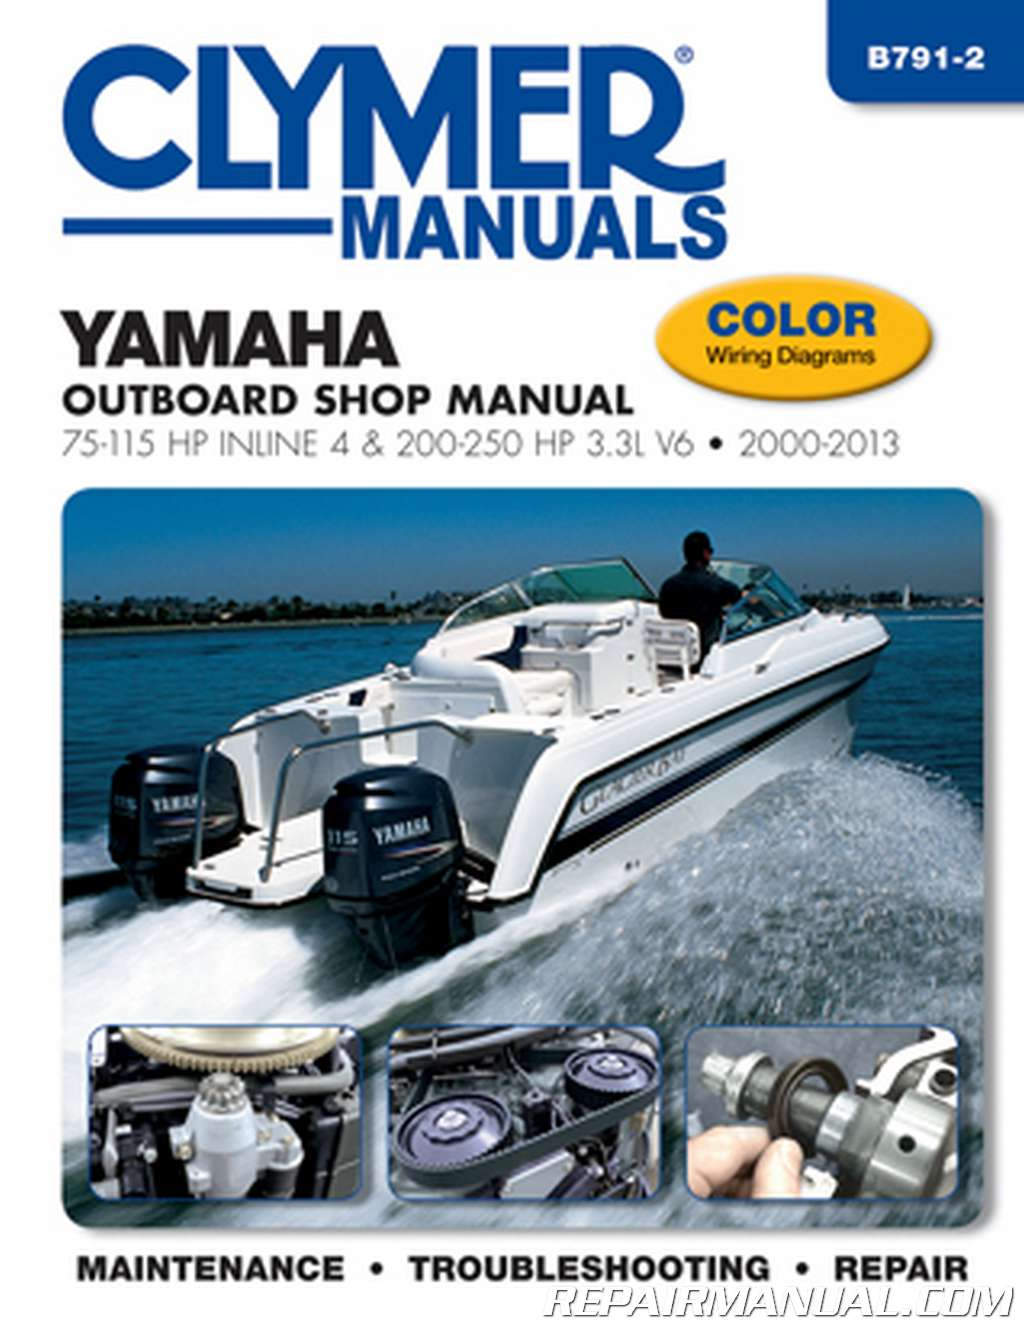 2000 2013 yamaha outboard shop manual 75 115 hp inline 4 and 200 250 hp 3 3l v6 Yamaha Tiller Outboard